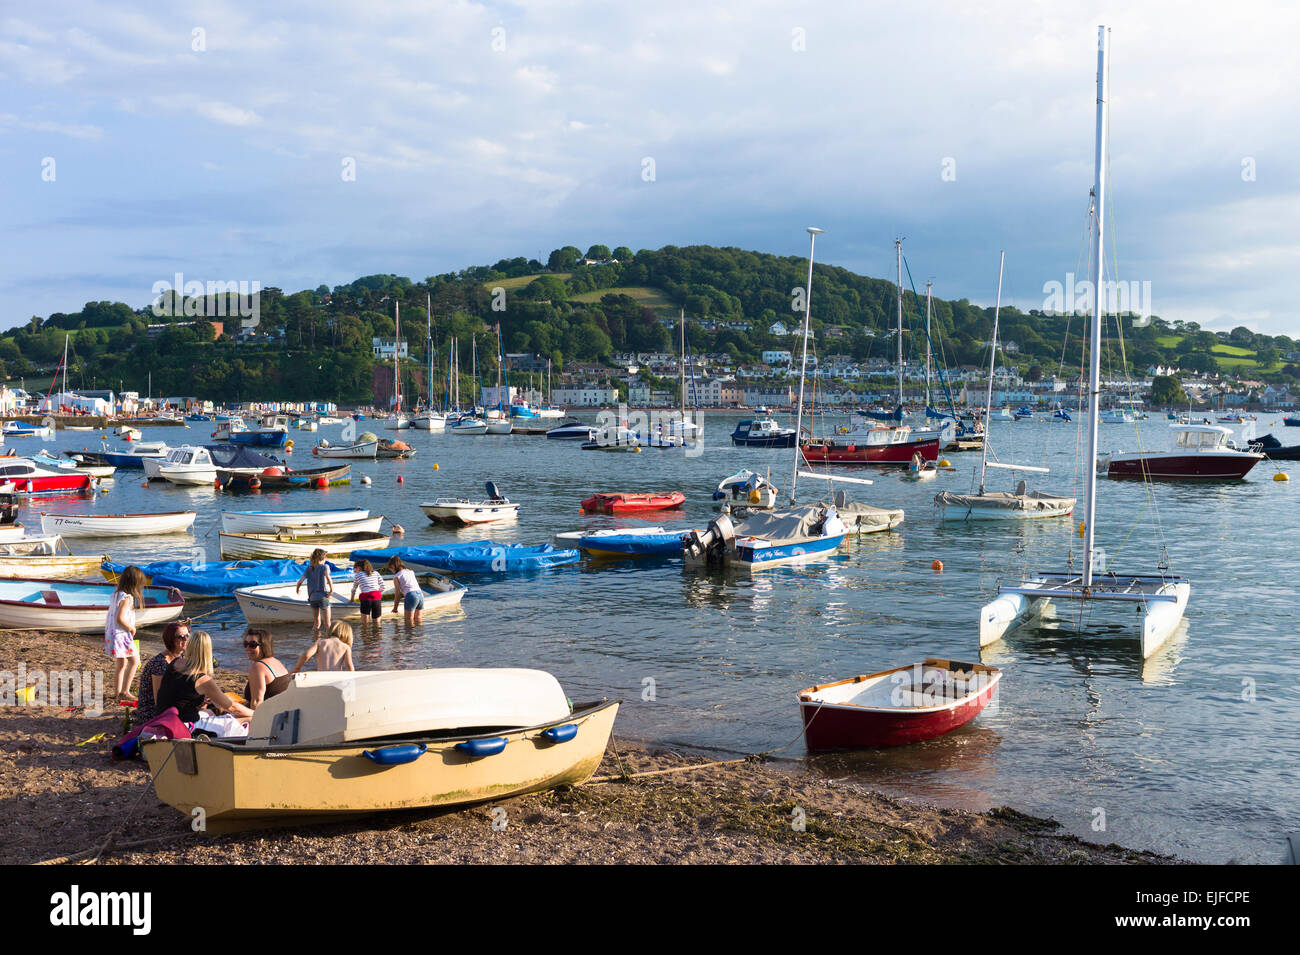 Boats in the harbour and family group on beach at coastal resort of Teignmouth in South Devon, England, UK Stock Photo